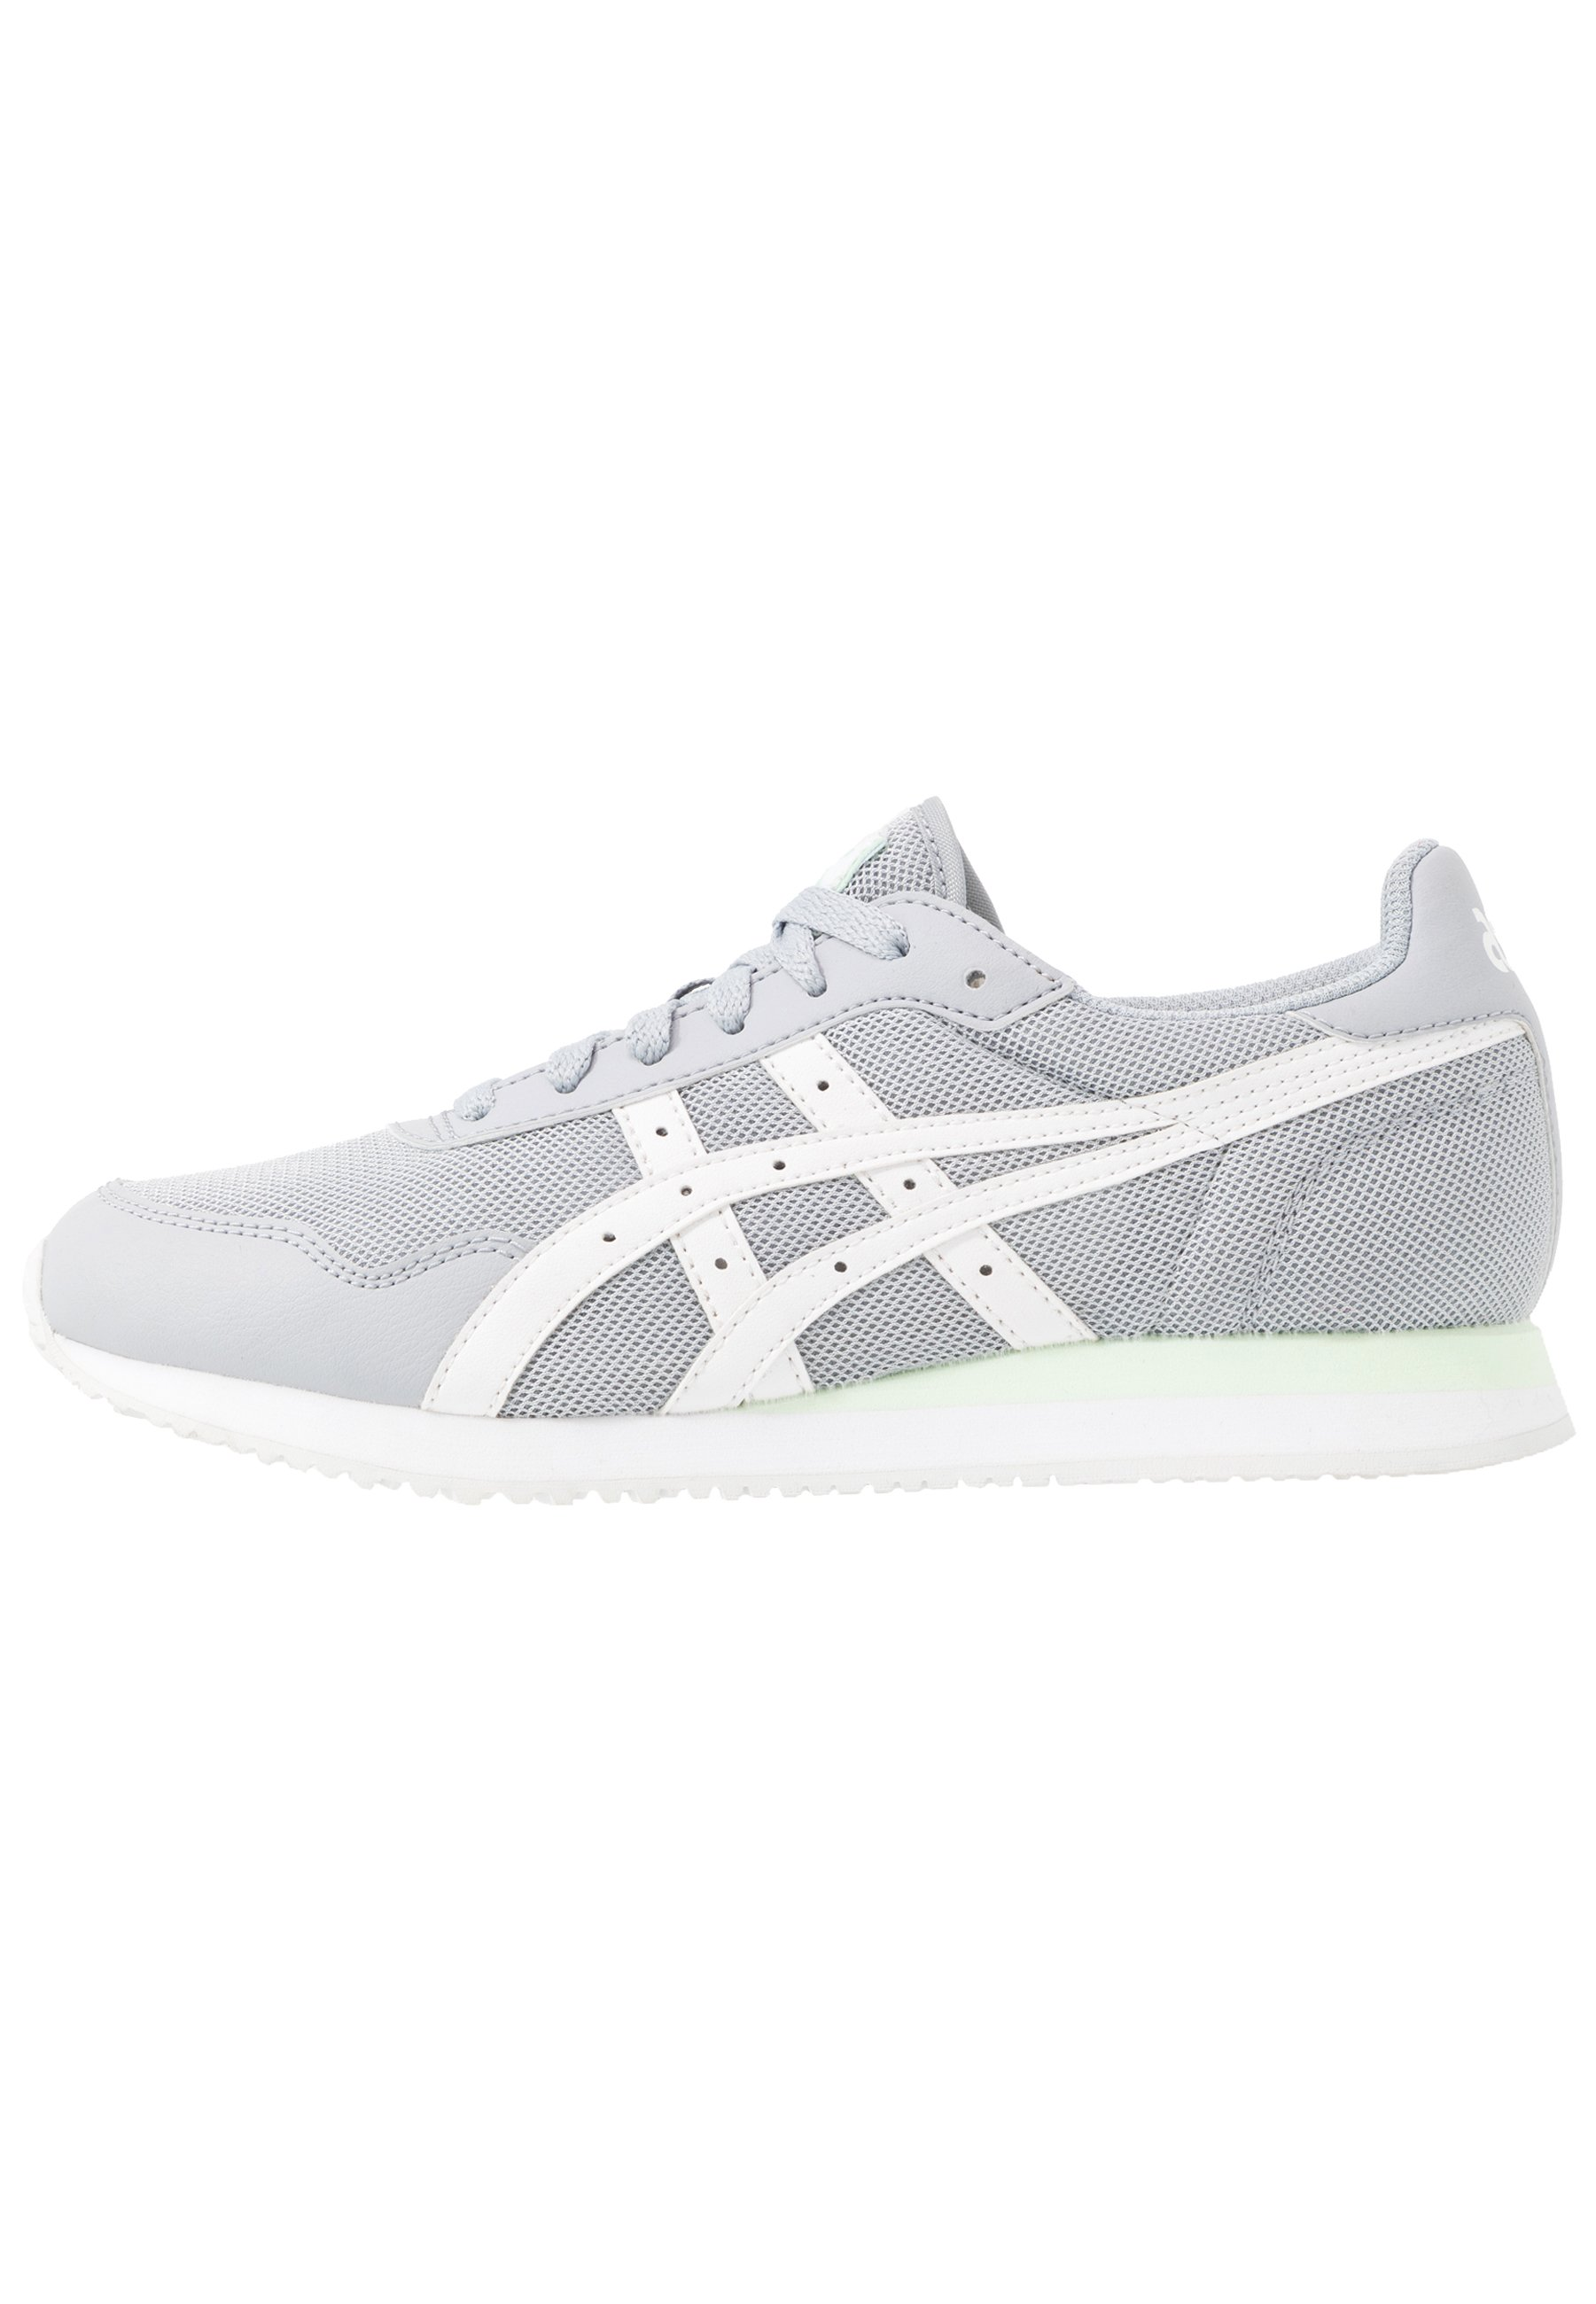 ASICS SportStyle TIGER RUNNER - Sneakers - piedmont grey/white 6A0h7